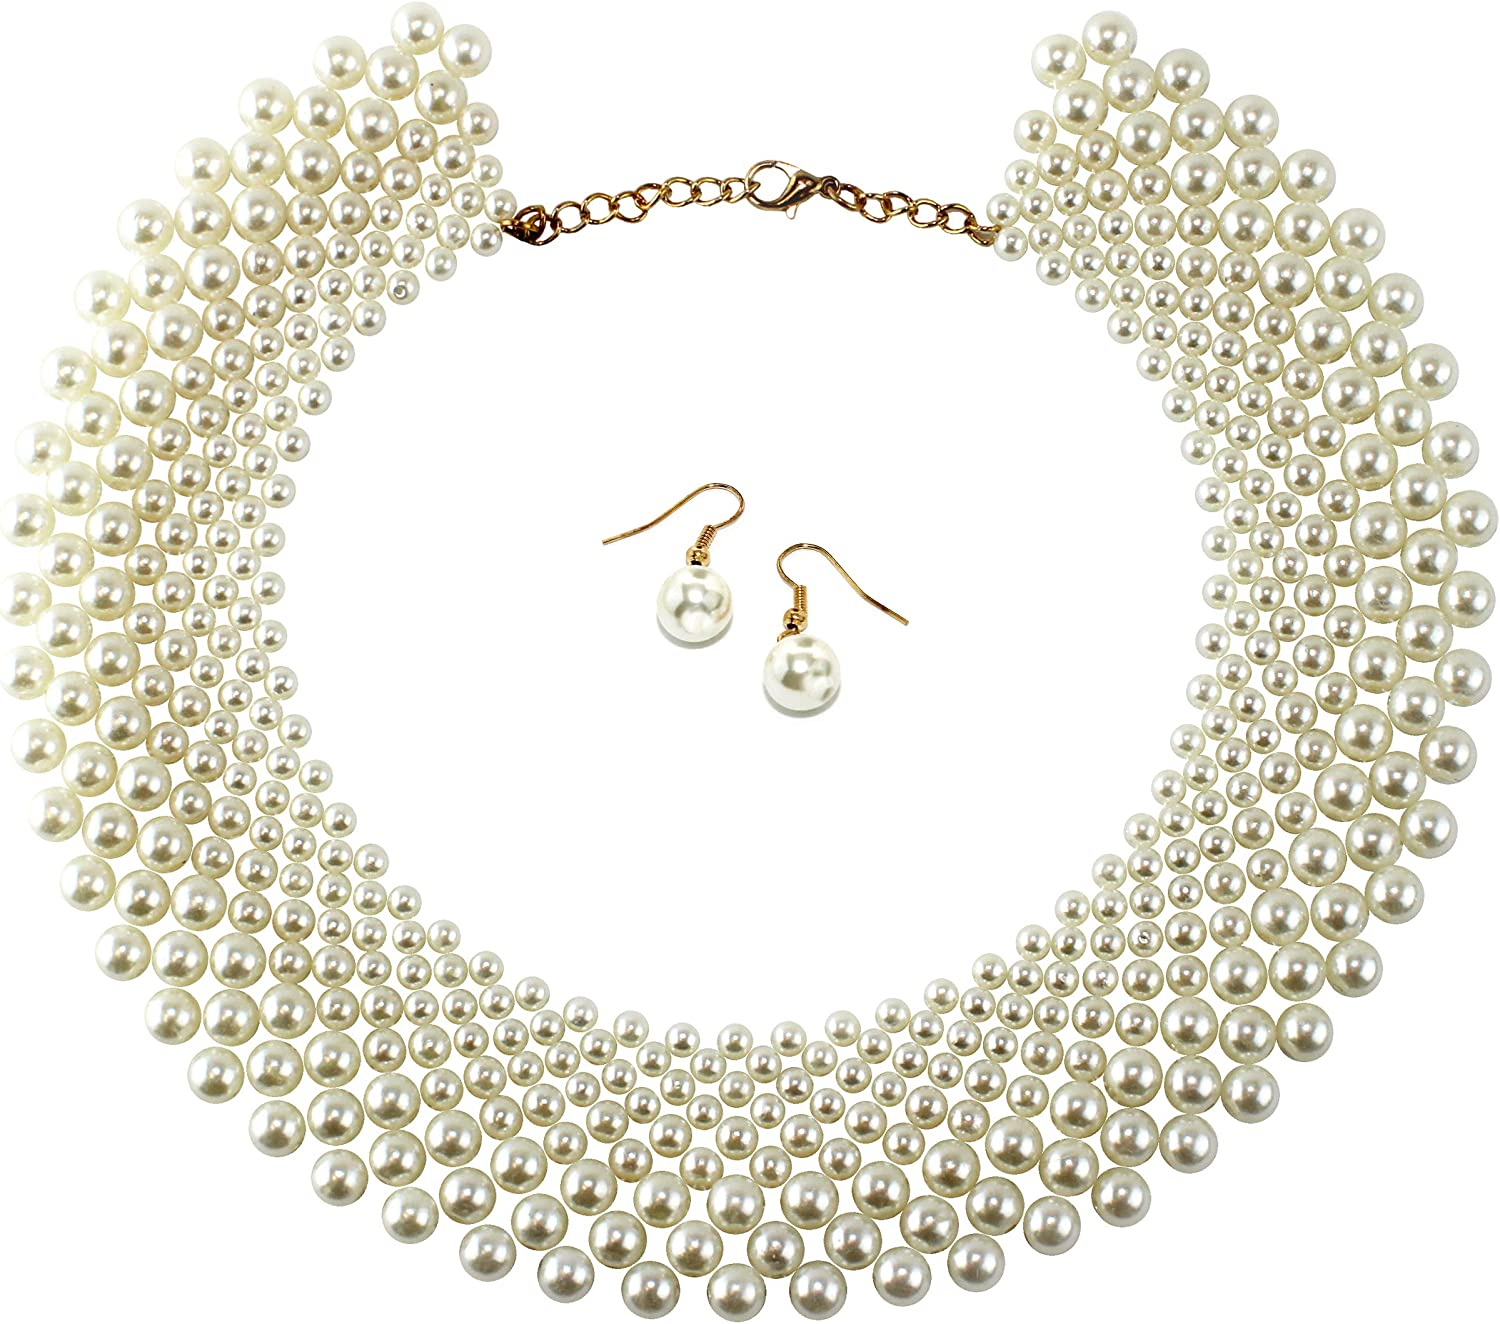 UrbanMixNY Woven Cream Color Simulated Pearl Bead Collar Choker Necklace Set